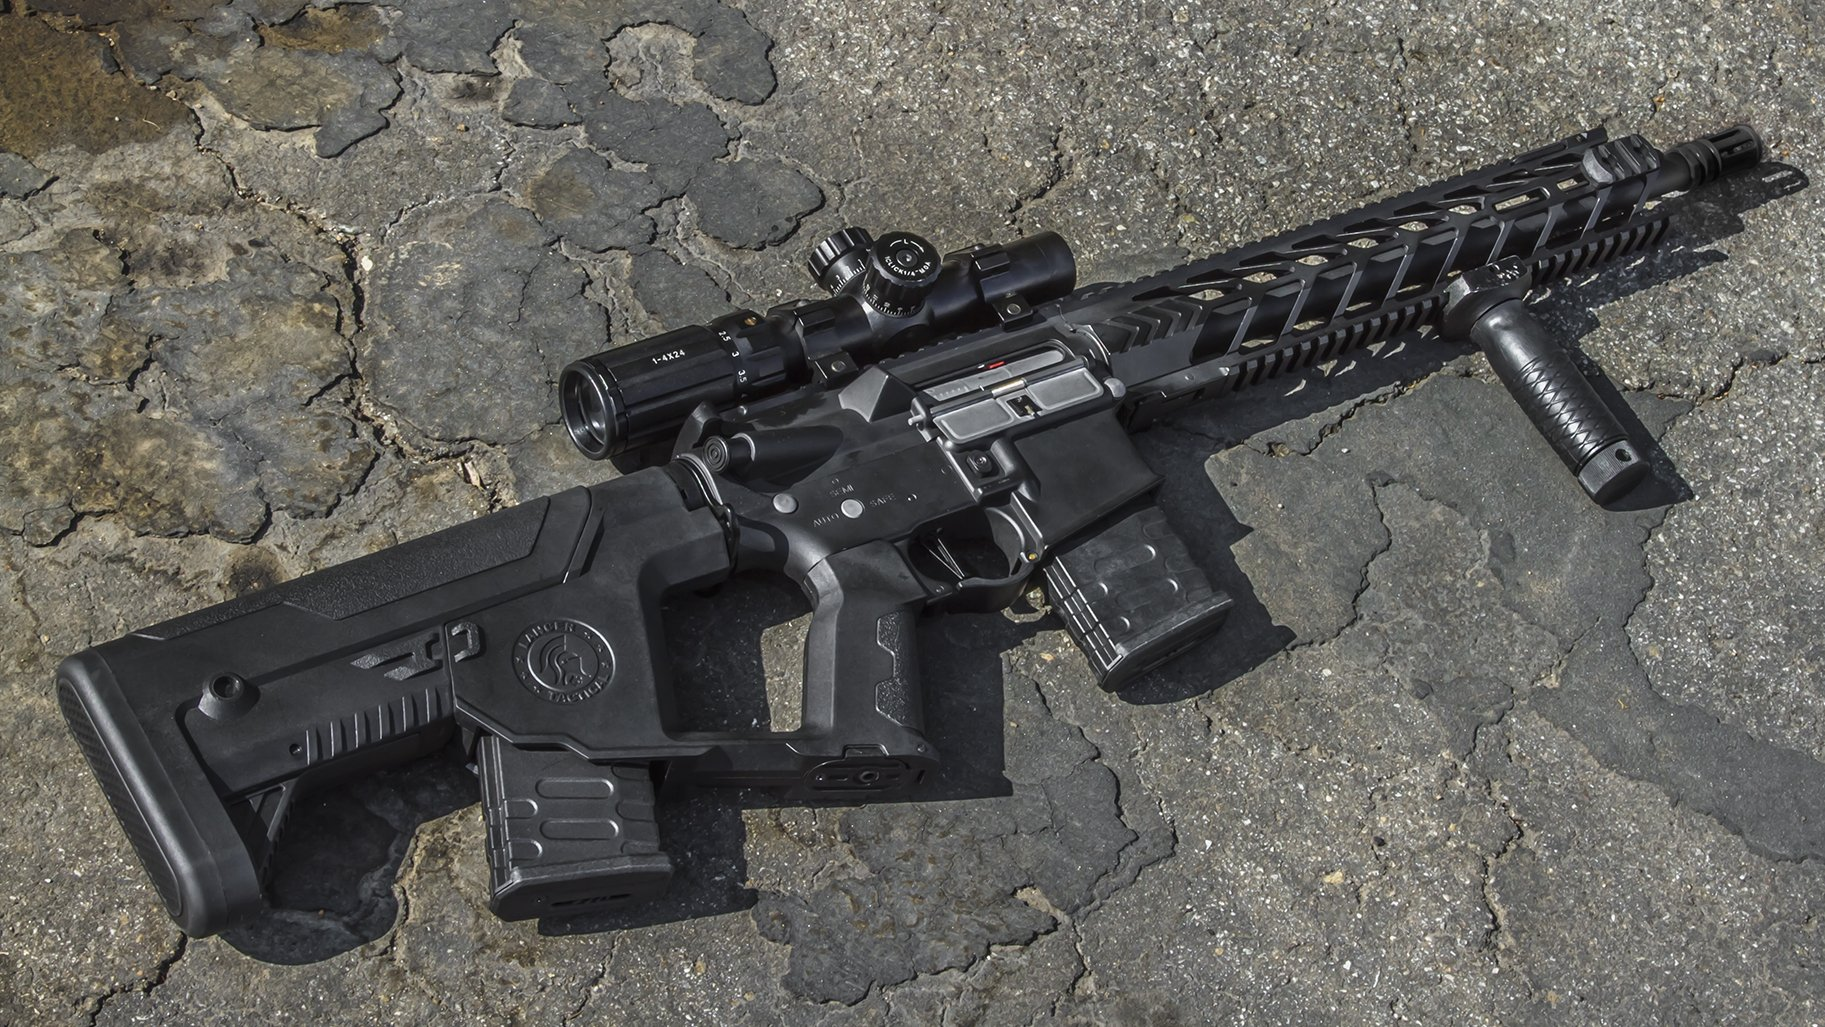 Lancer Tactical Gen 2 Proline